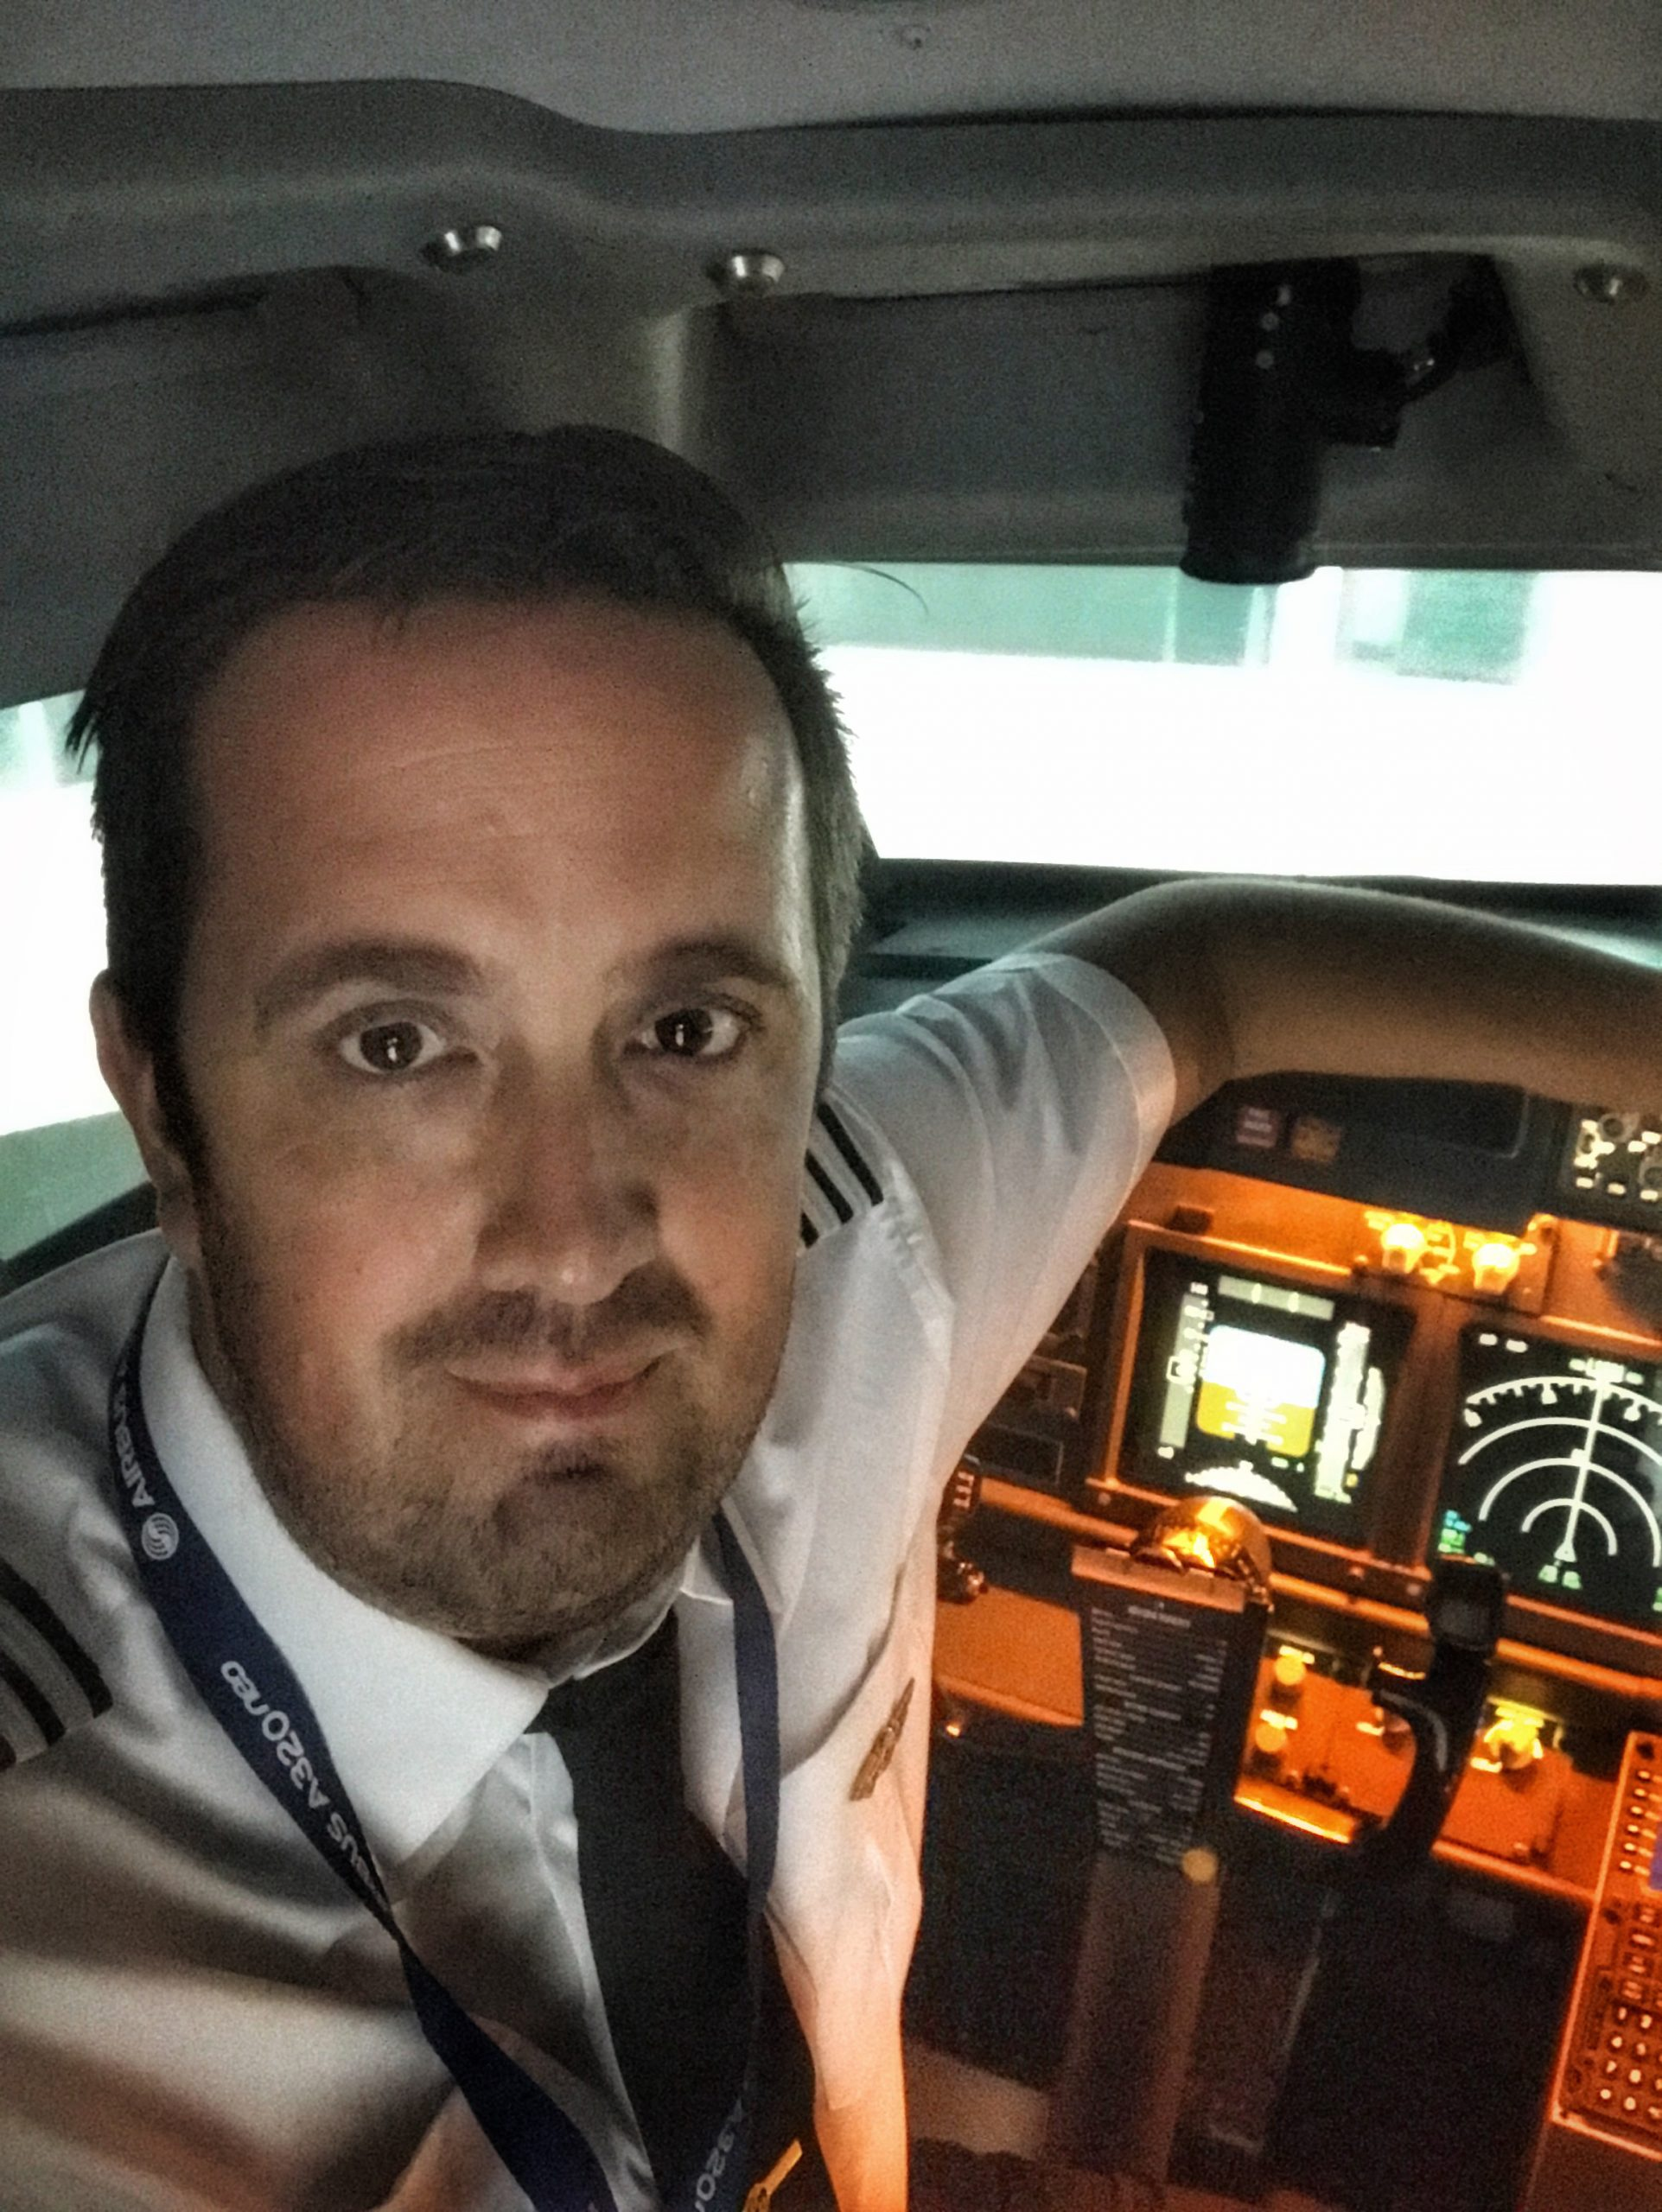 Simon in the cockpit of his aircraft